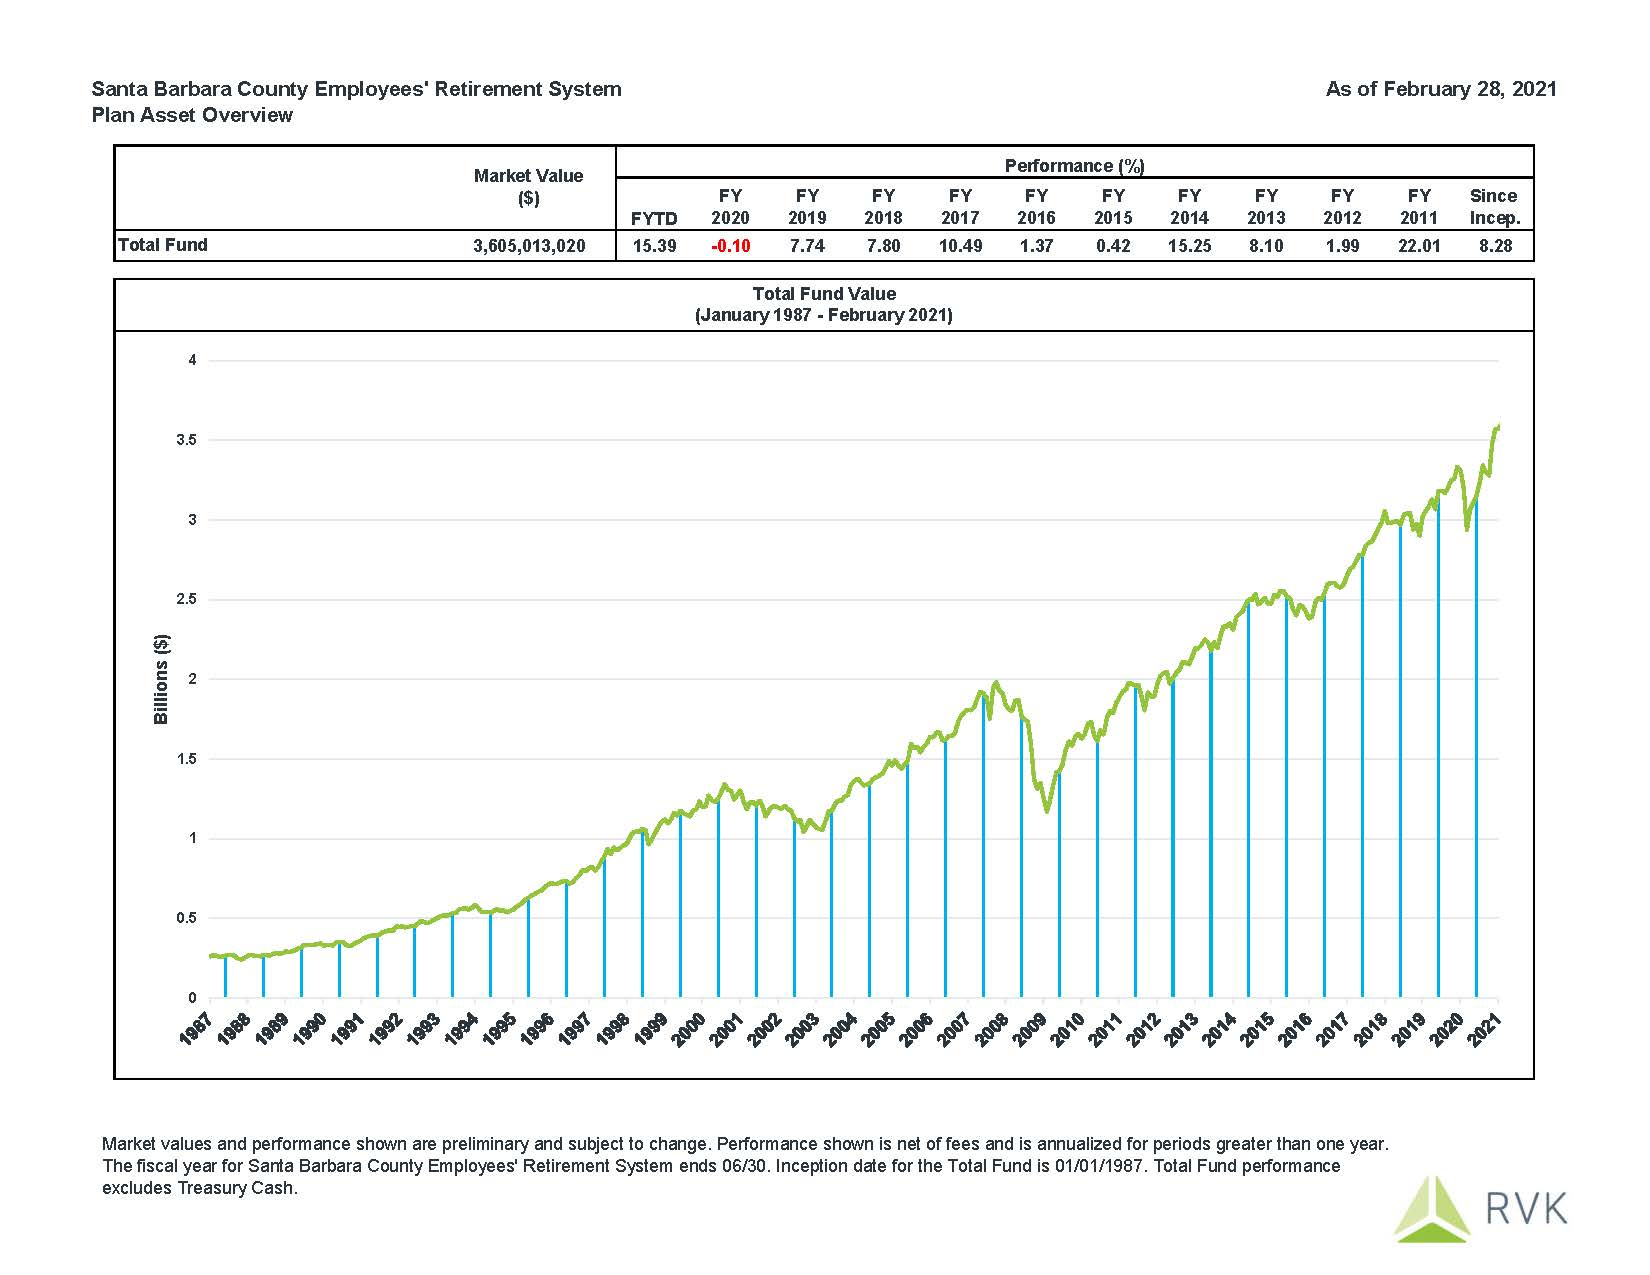 February 2021 Fund Performance: Fiscal Year to Date performance is 15.39%.